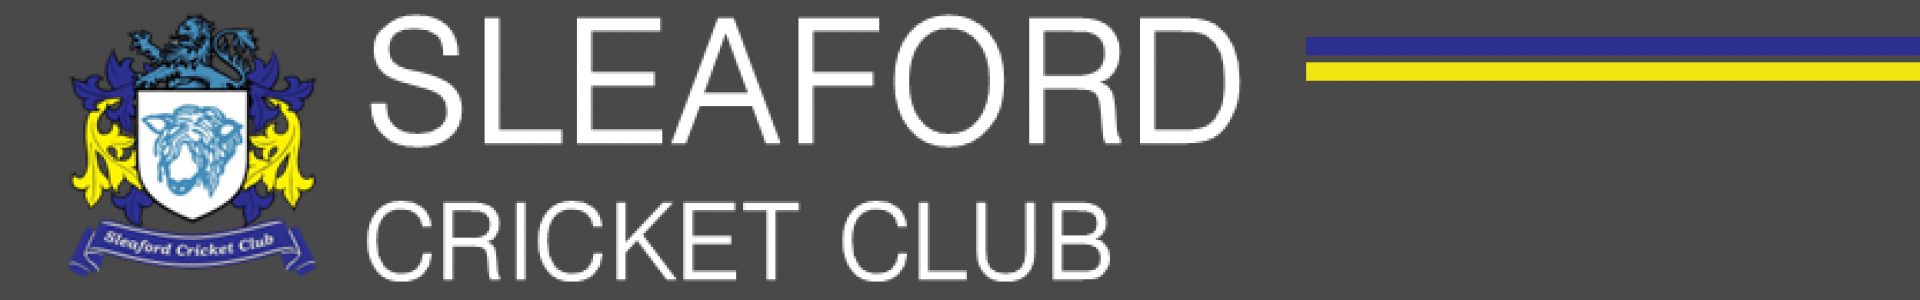 cropped-Website-Graphic-Sleaford-CC.png